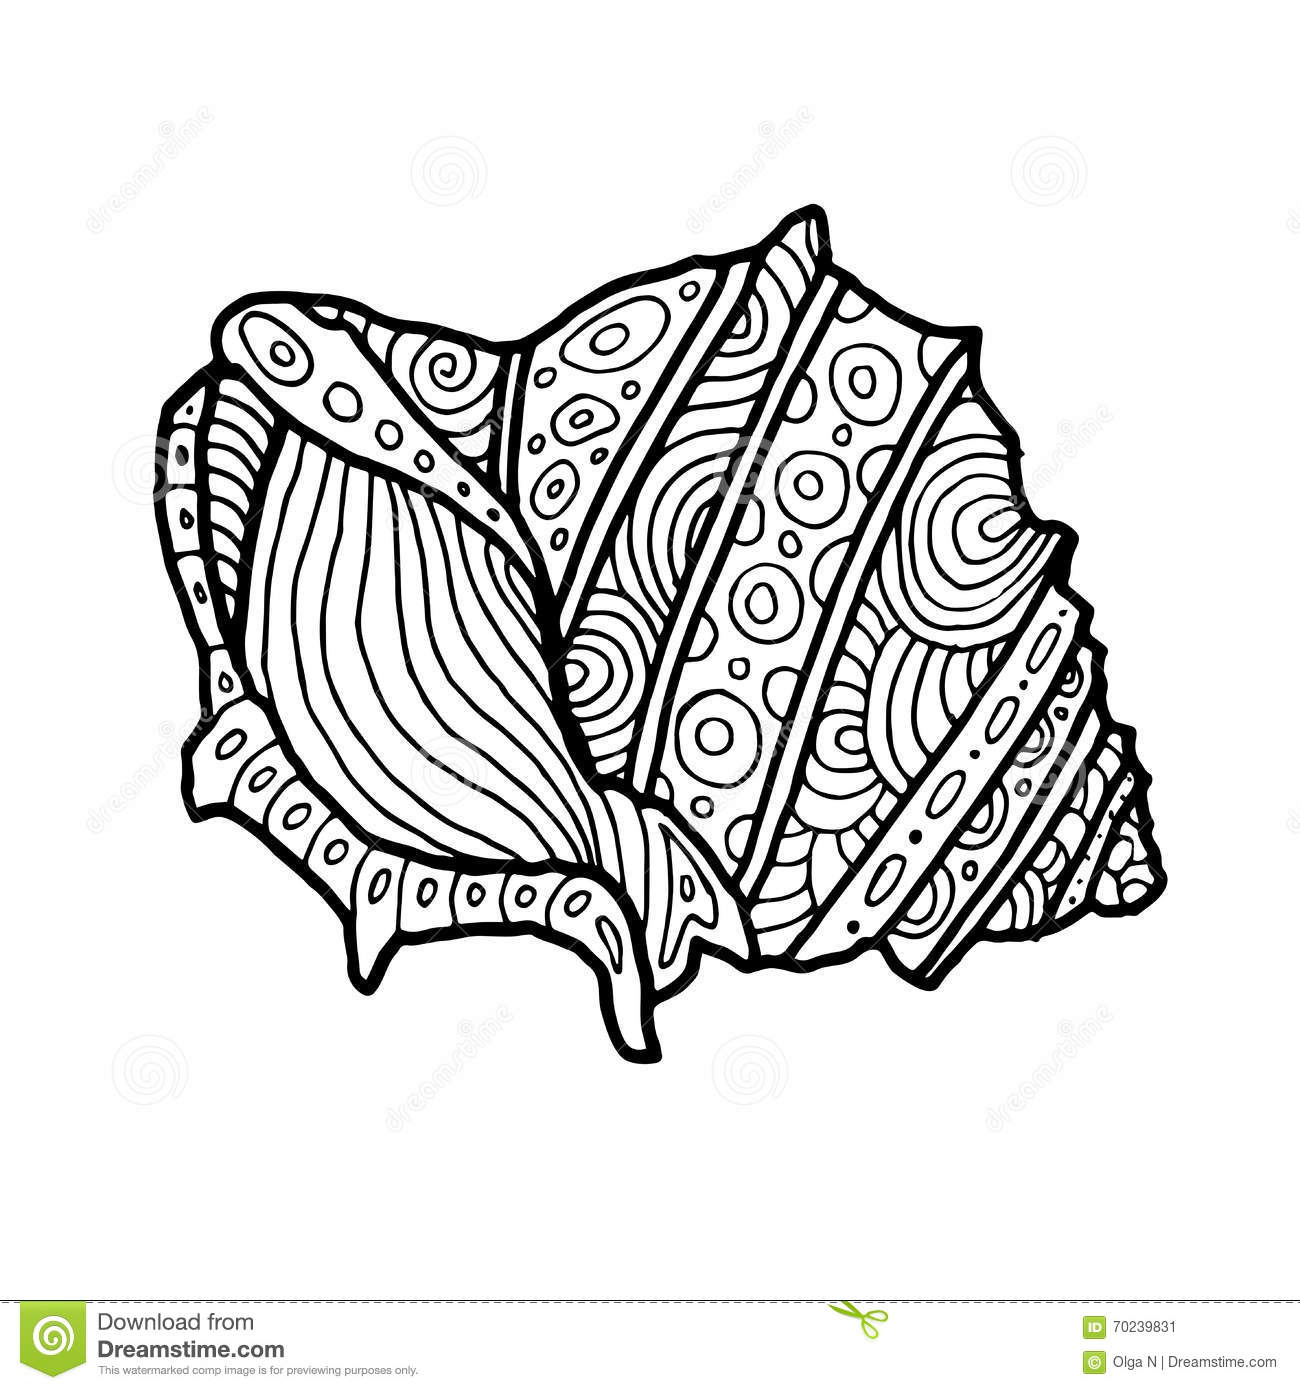 decorative zentangle sea shell illustration outline drawing coloring book for adult and children